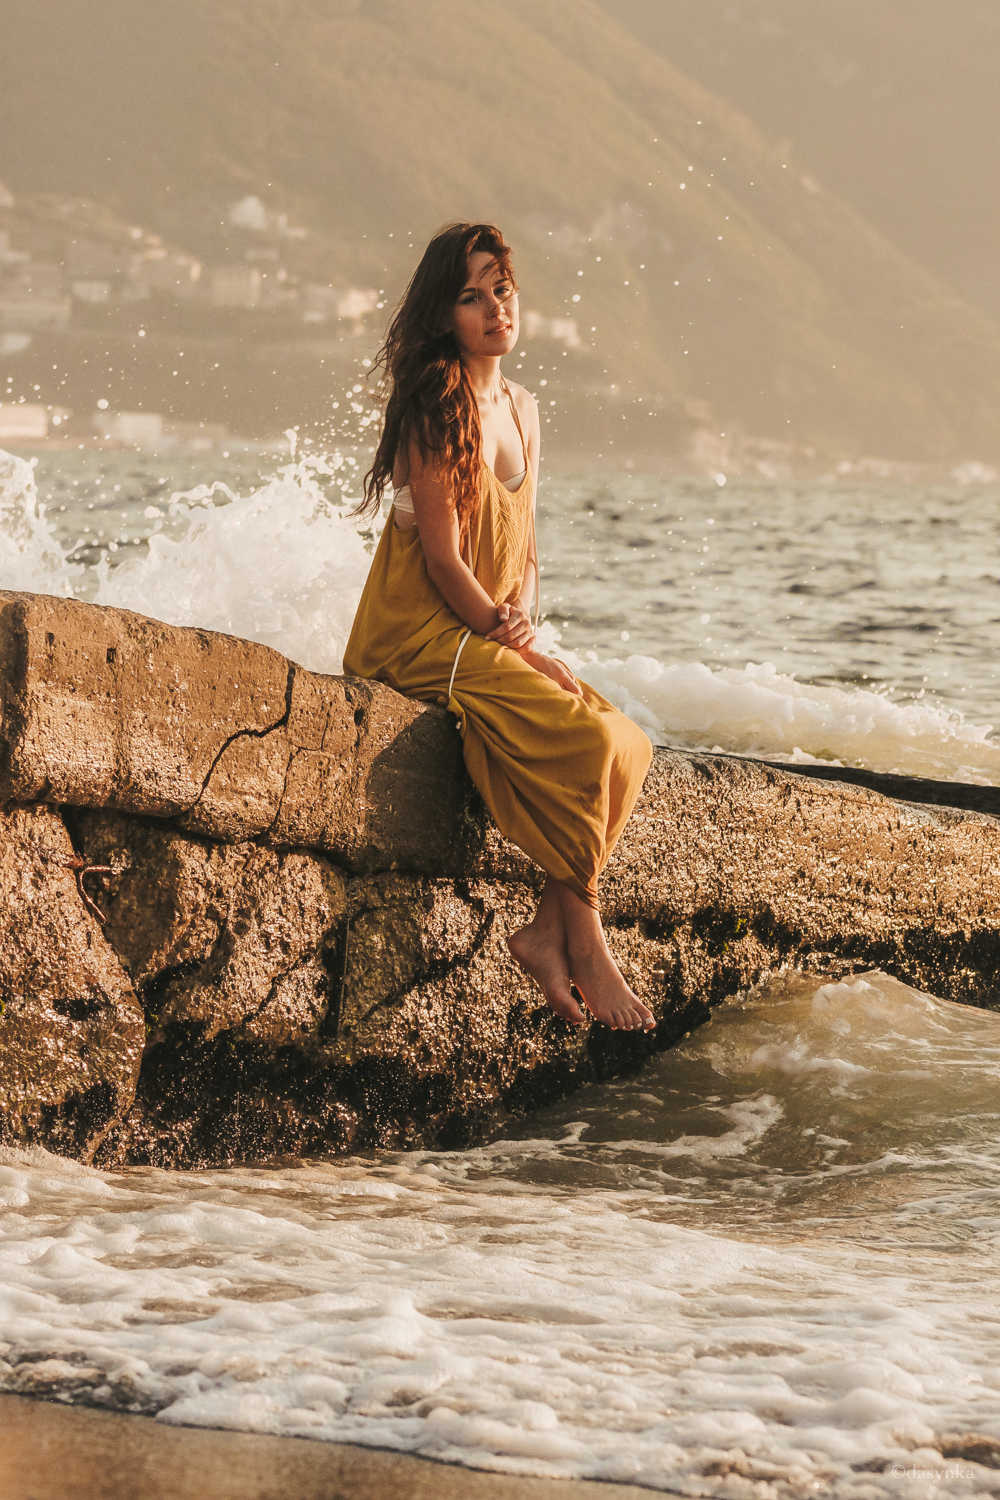 dasynka-fashion-blog-blogger-influencer-inspiration-shooting-model-globettrotter-travel-girl-lookbook-instagram-long-hair-street-style-casual-italy-lifestyle-outfit-poses-zara-casual-chic-instagrammer-inspo-summer-beach-sun-sunset-sea-ocean-mermaid-dress-yellow-white-bikini-swimwear-onepiece-swimsuit-body-traveler-photography-beautiful-photo-professional-wet